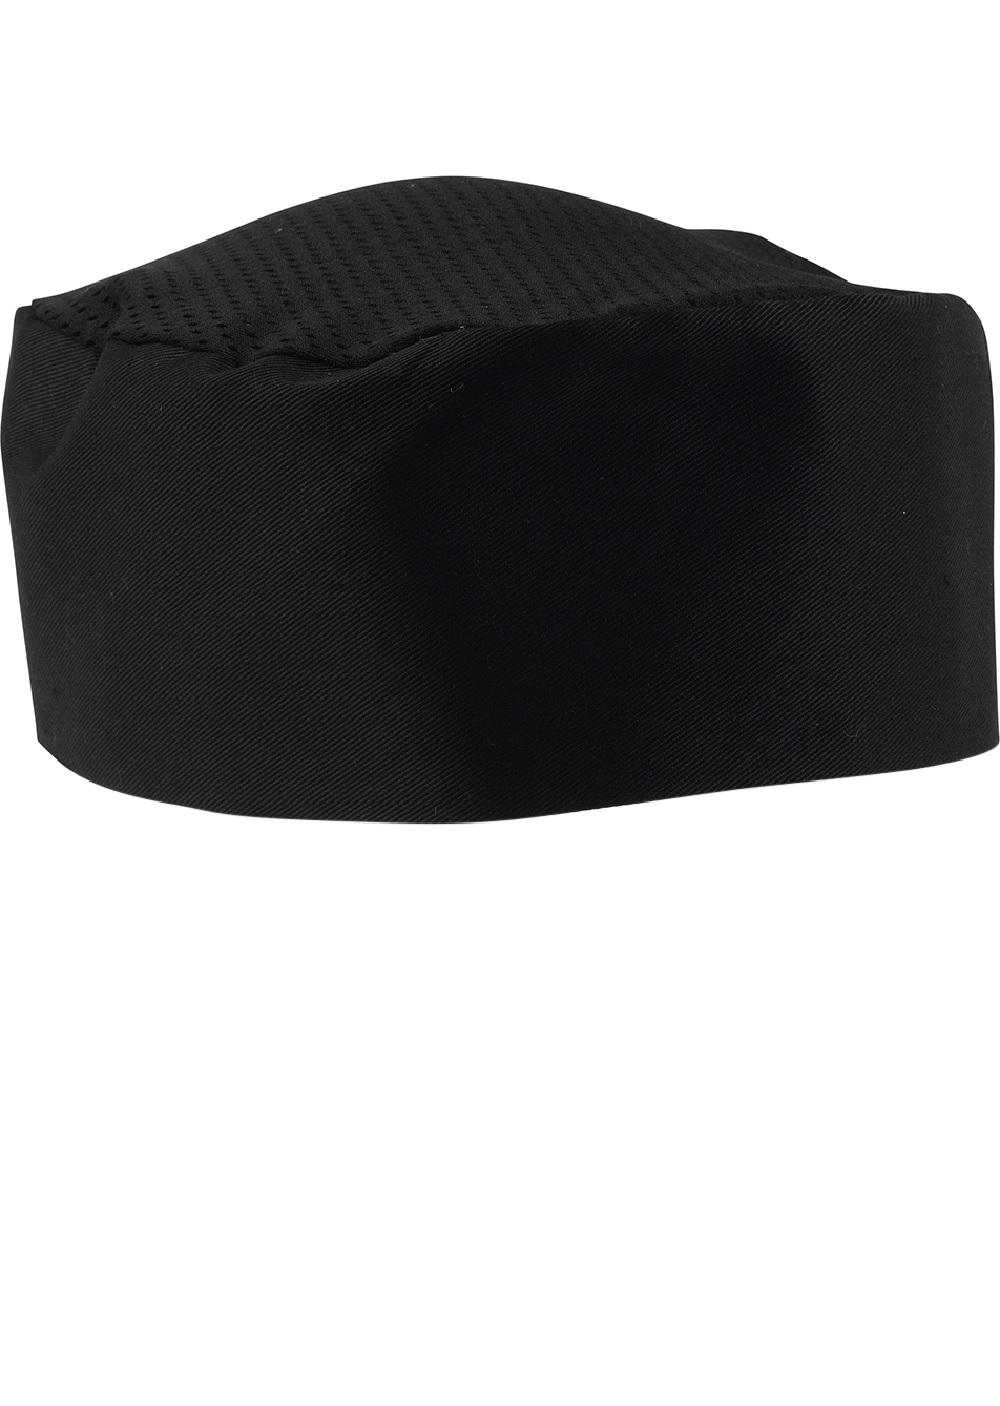 04a167d9c12 Polycotton Chefs Skull Cap Mesh Top White Black Cool Cooking Catering  Restaurant